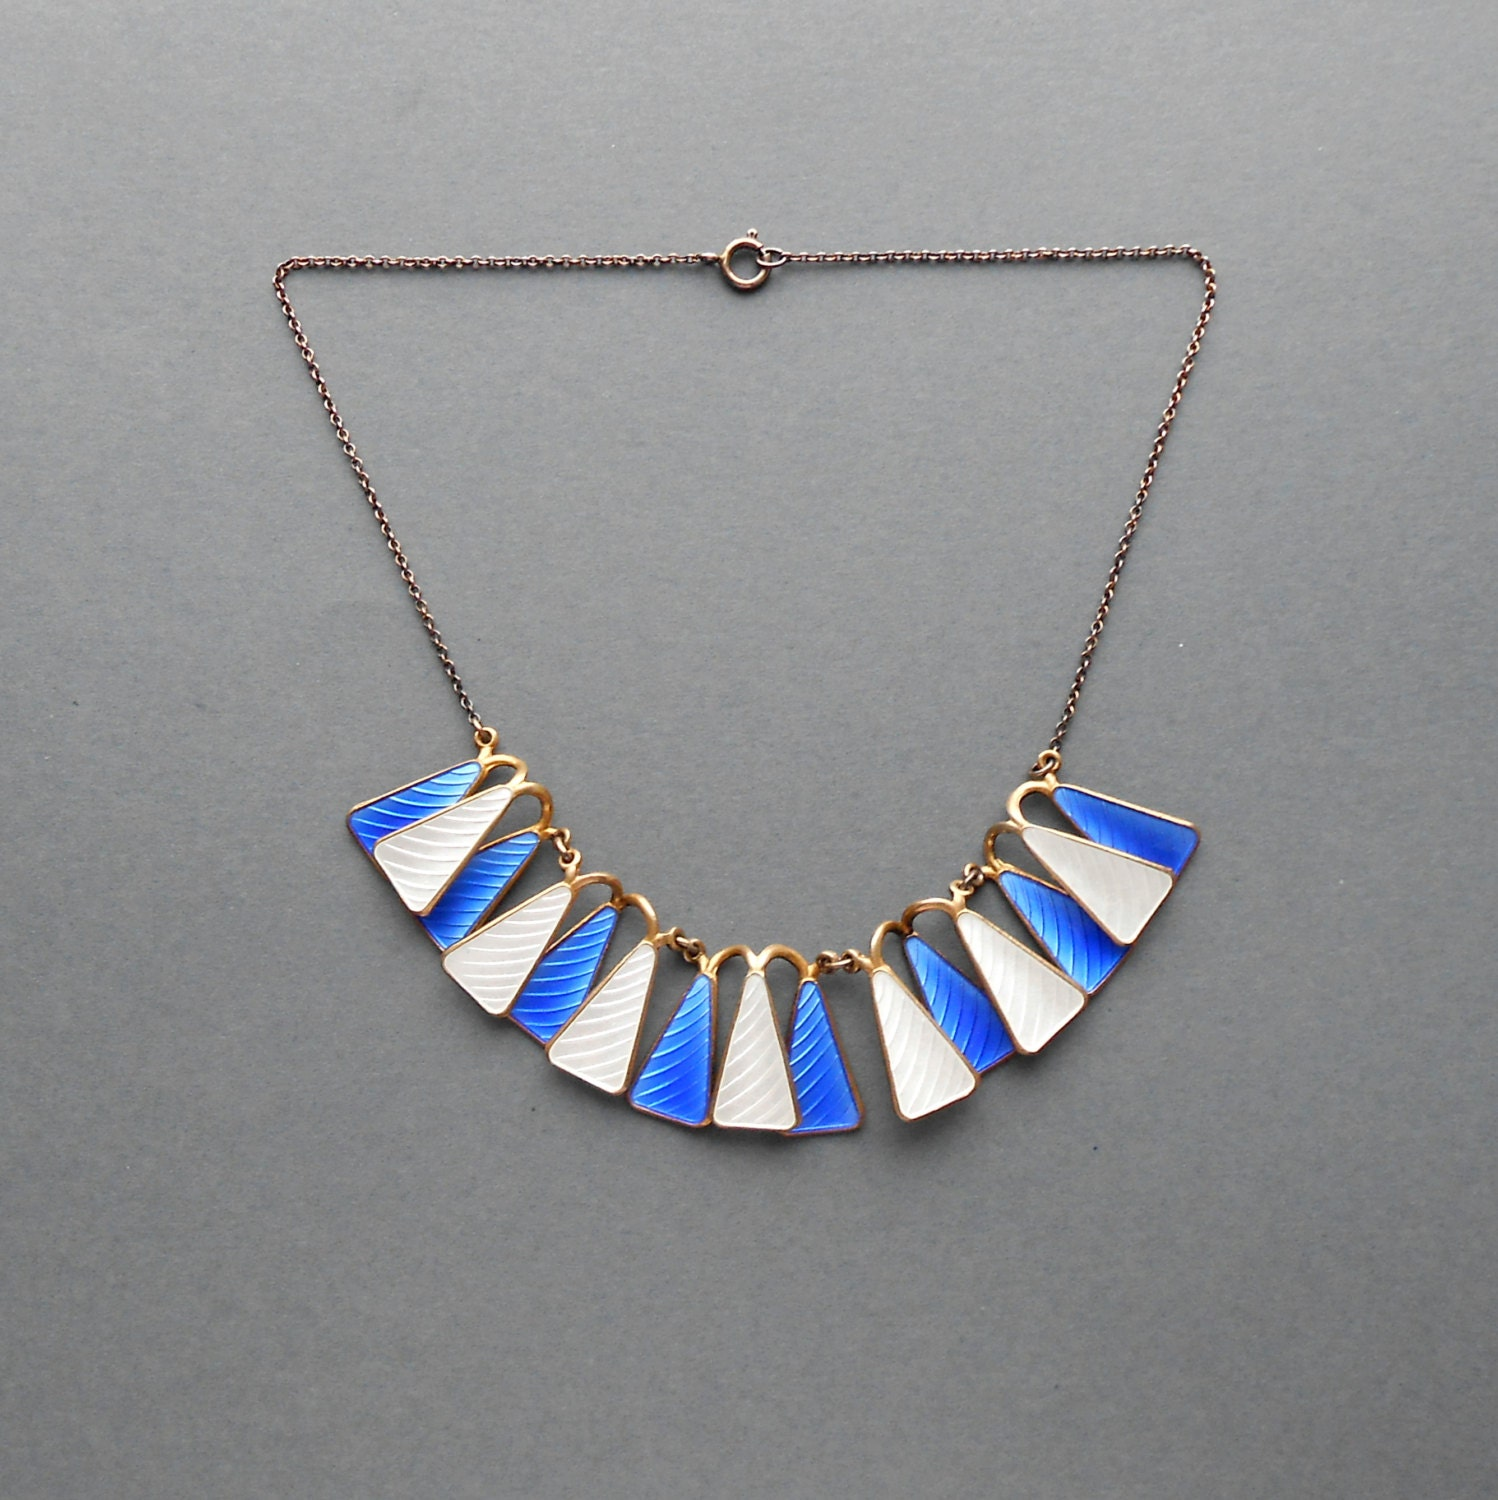 Scandinavian Modernist Jewelry. Sterling Enamel Necklace.